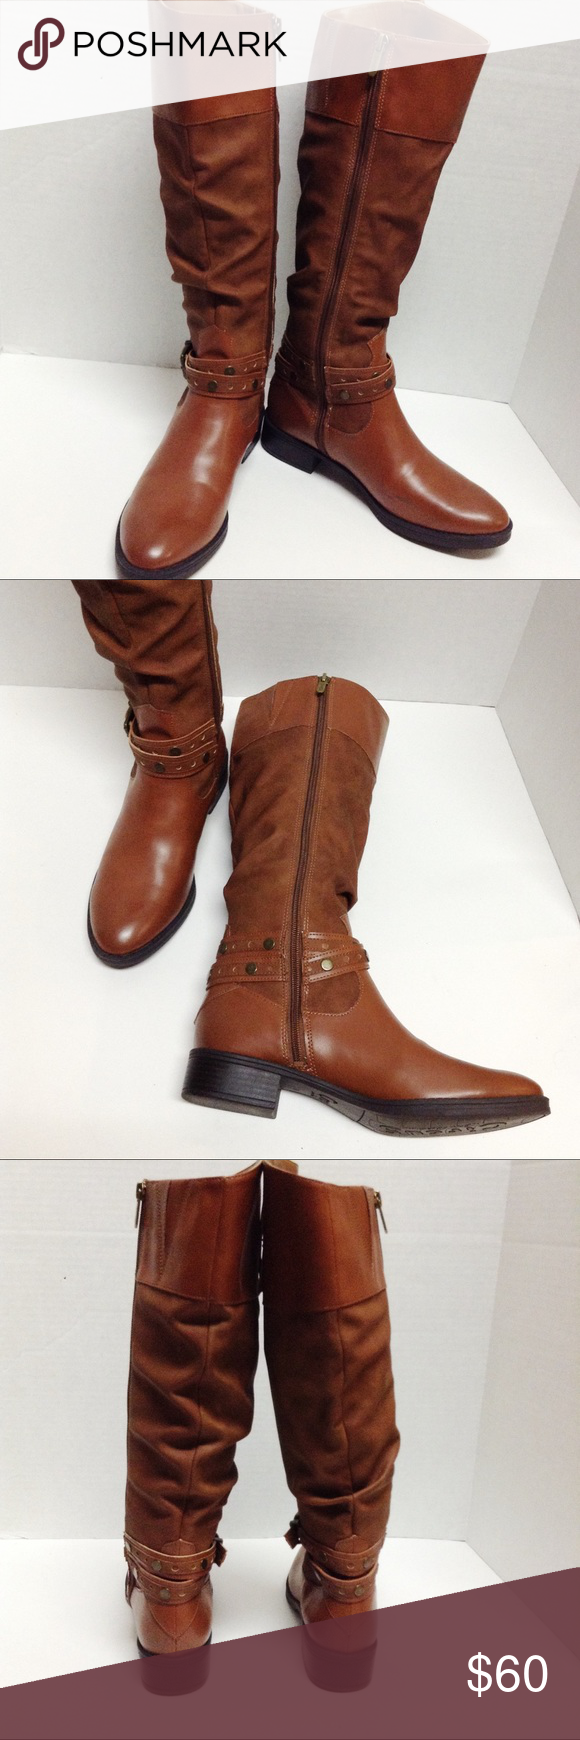 3f123833361bd Circus by Sam Edelman Paxton knee high riding boot Circus by Sam Edelman  Paxton whiskey brown knee high riding boots faux leather glossy finish on  the tops ...